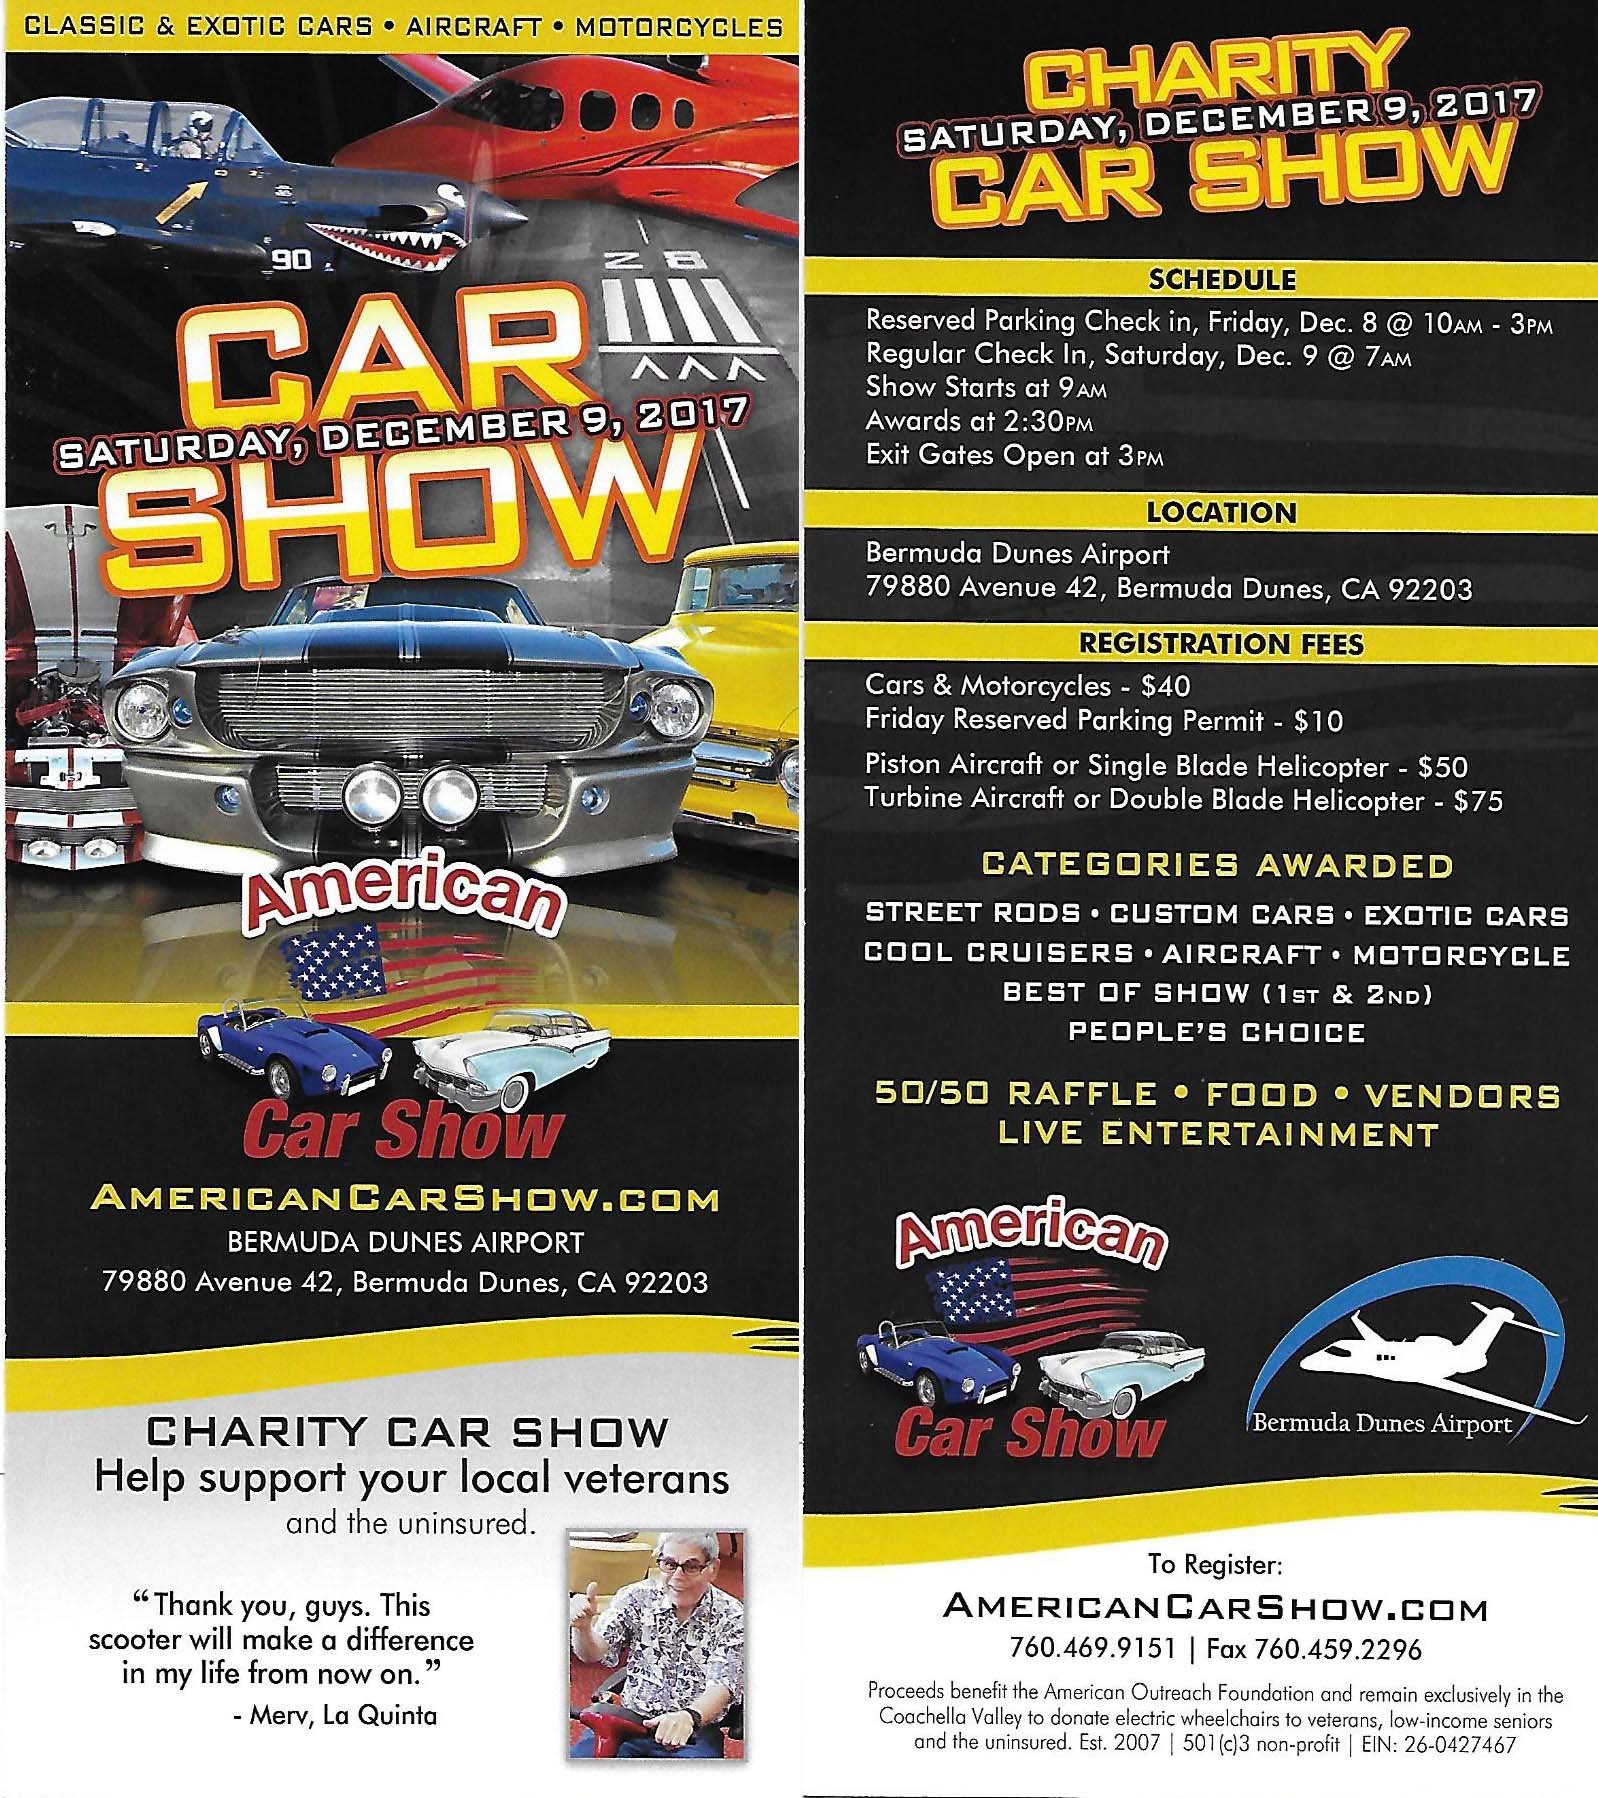 Projects Of Coachella Valley Lions Club - Bermuda dunes airport car show